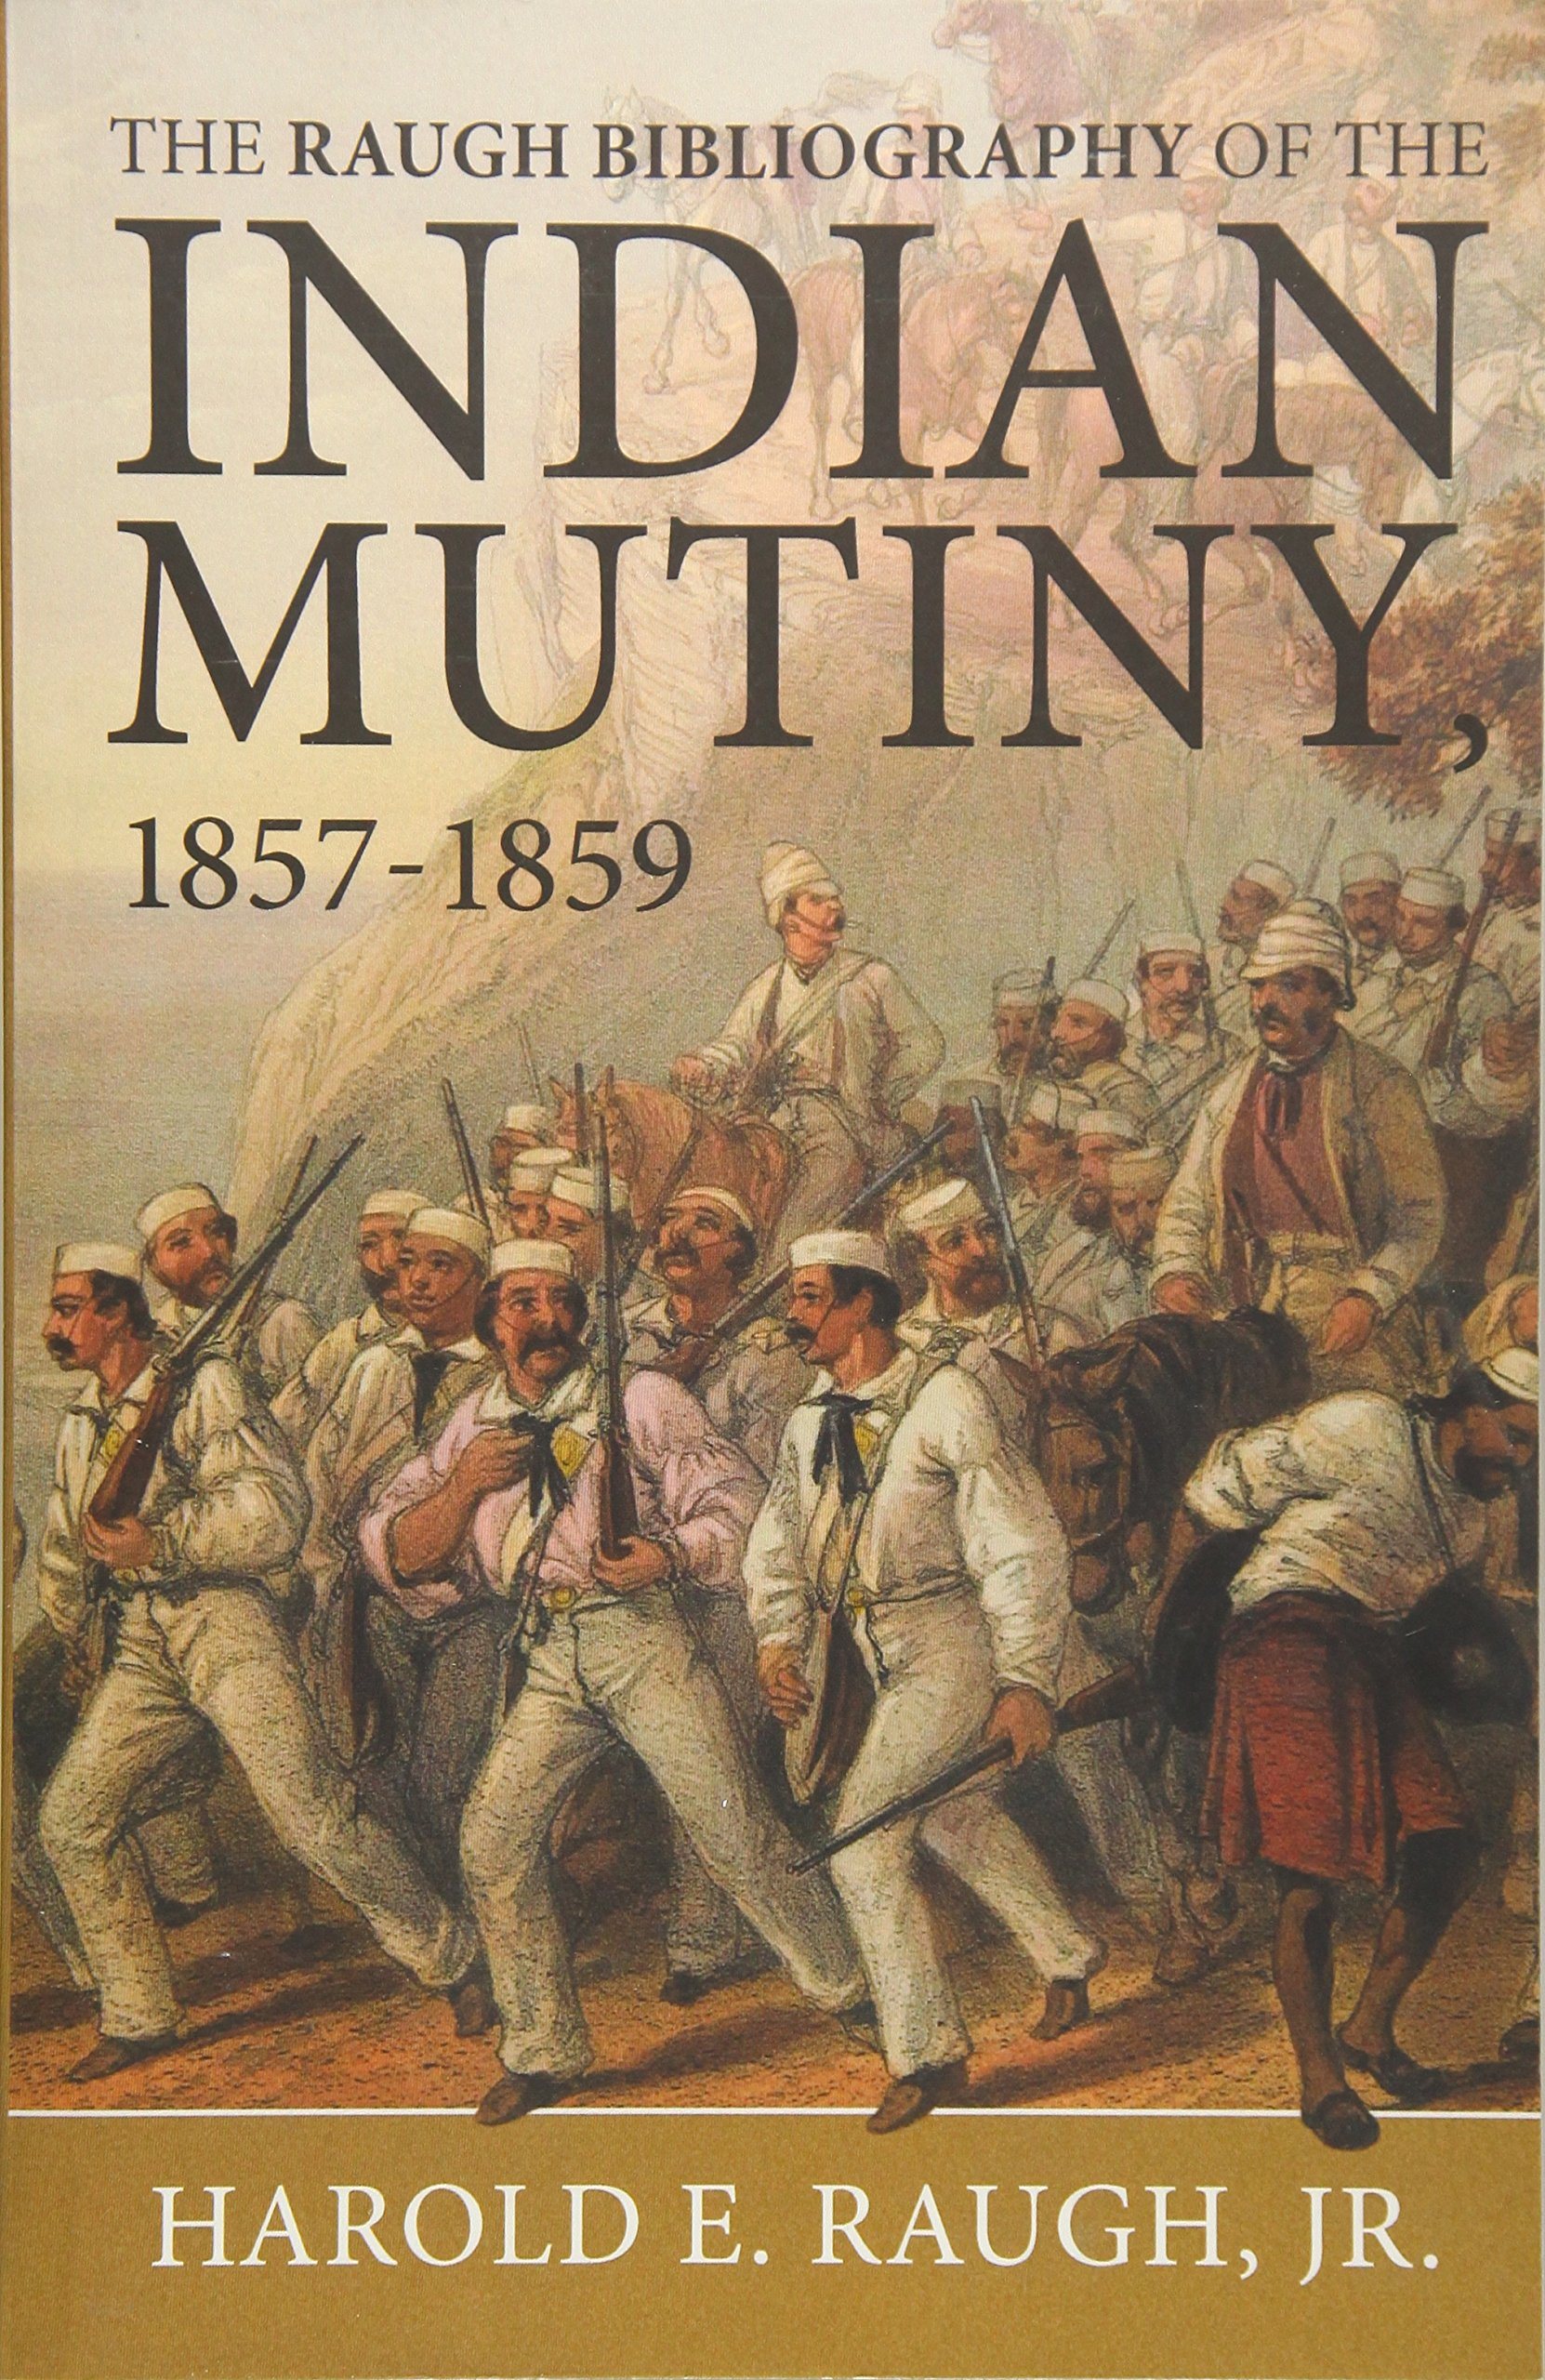 The Raugh Bibliography of the Indian Mutiny, 1857-1859 Paperback – April  14, 2016